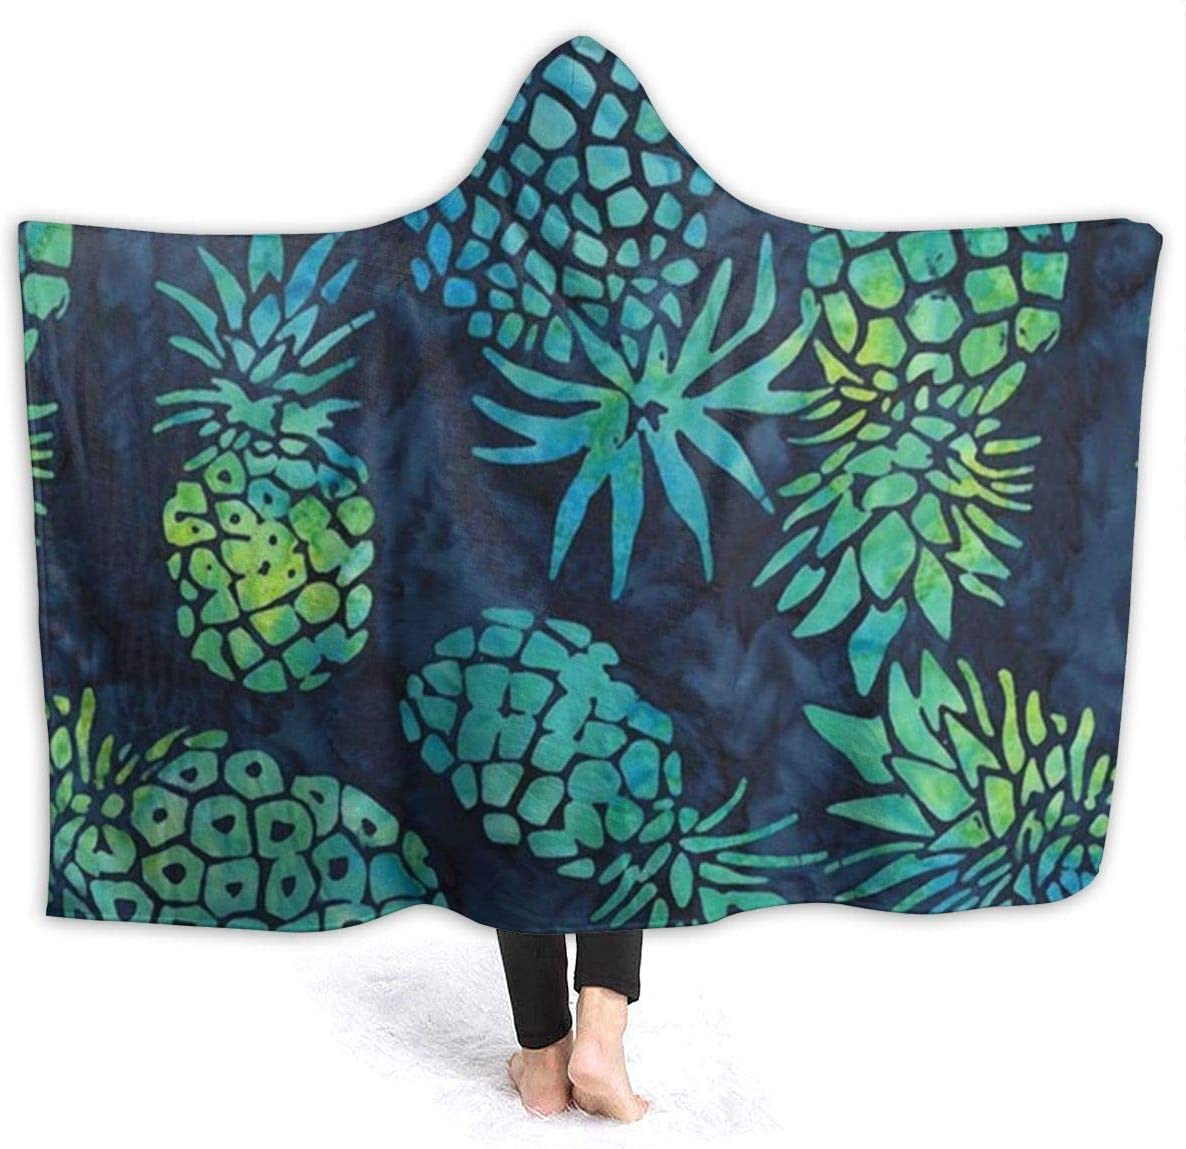 Hooded Flannel Blanket Max 47% OFF Pineapple Fruits Pineapples Blue Los Angeles Mall Tropical